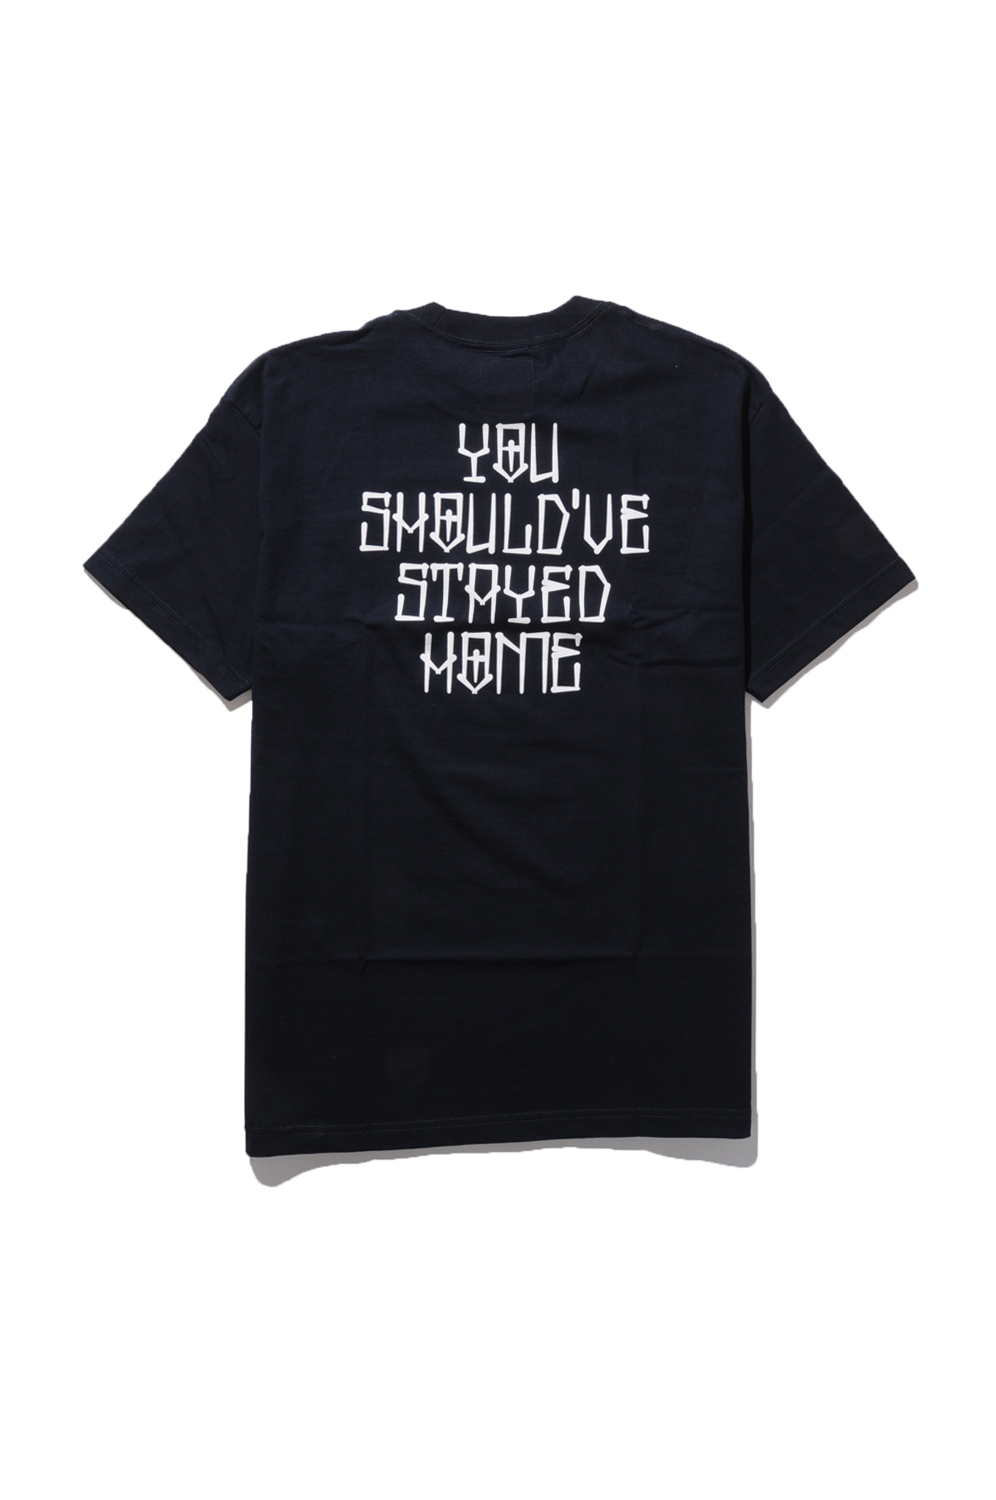 画像3: 【am】YOU SHOULDVE STAYED HOME POCKET TEE